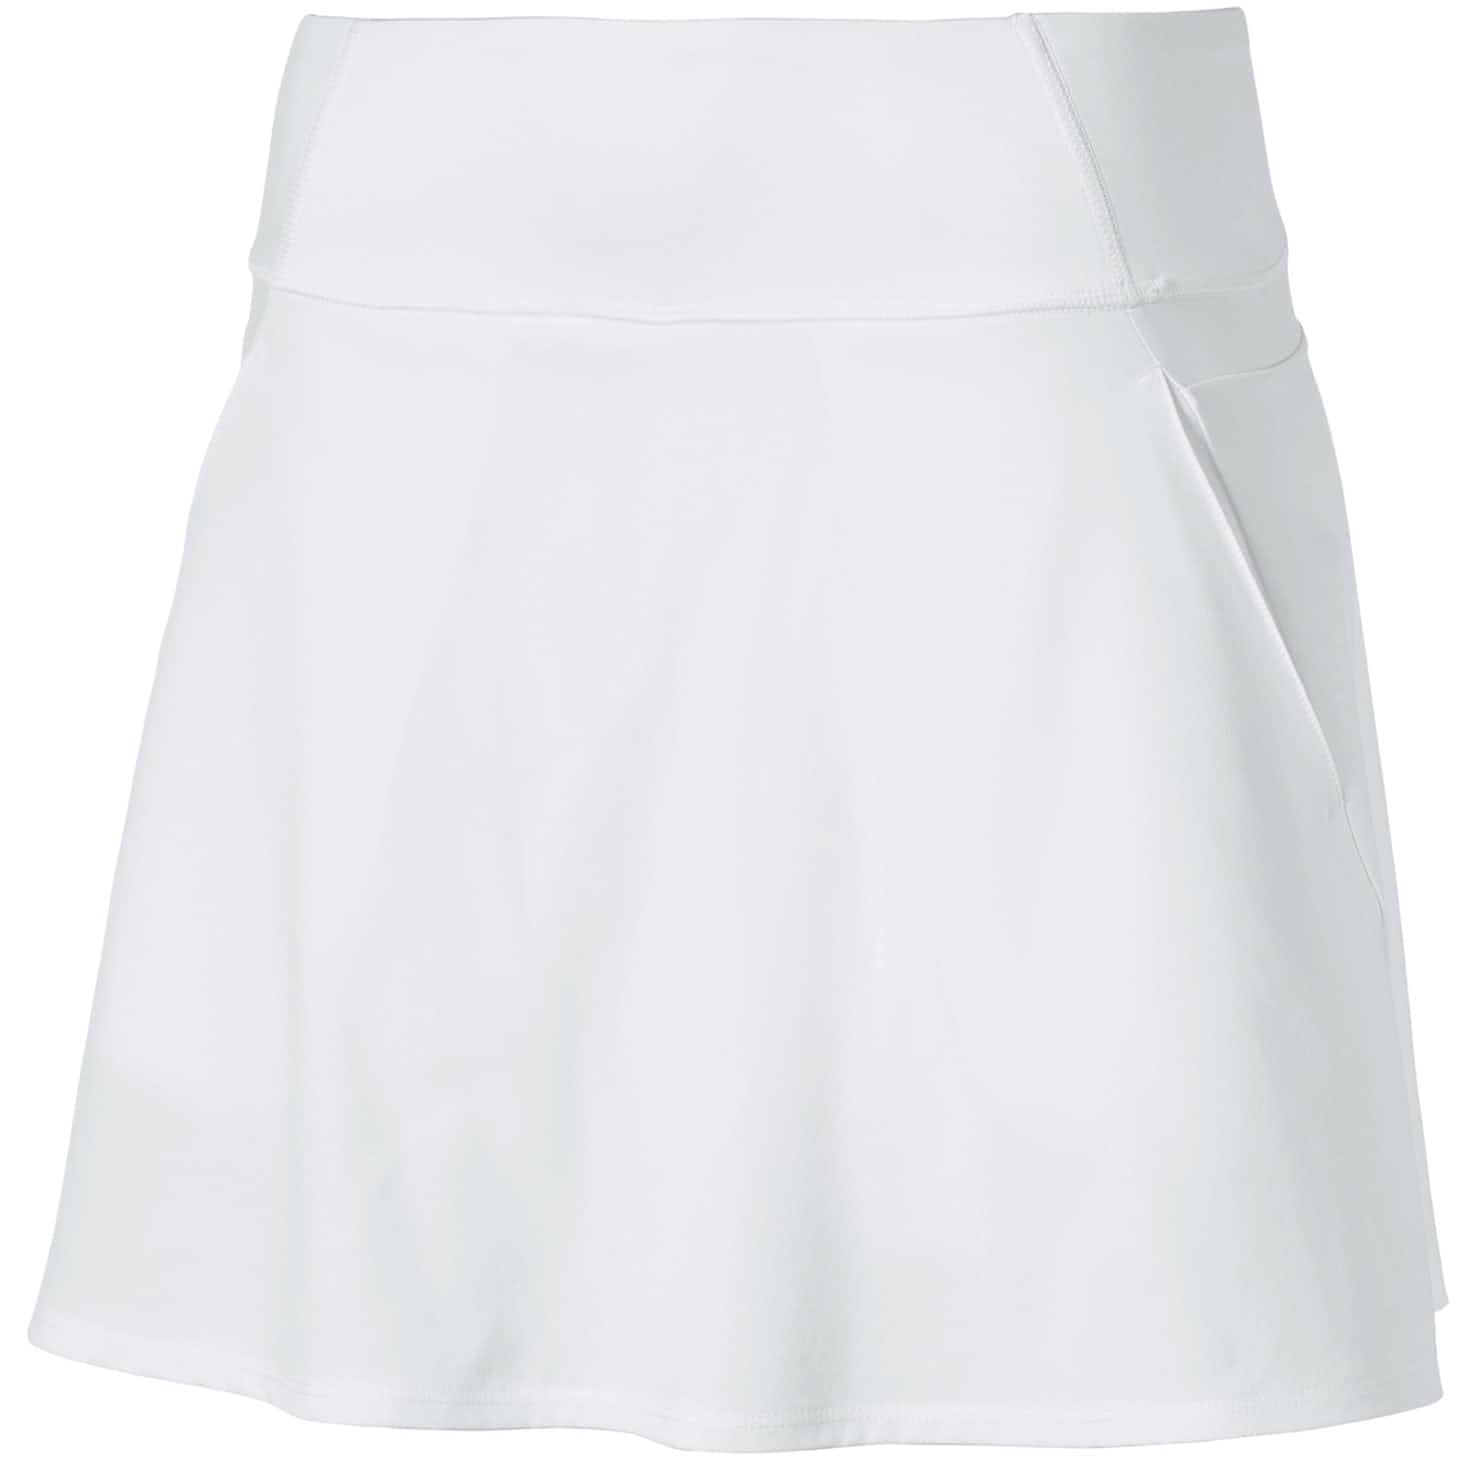 Womens PWRSHAPE Solid Woven Skirt Bright White - SS20